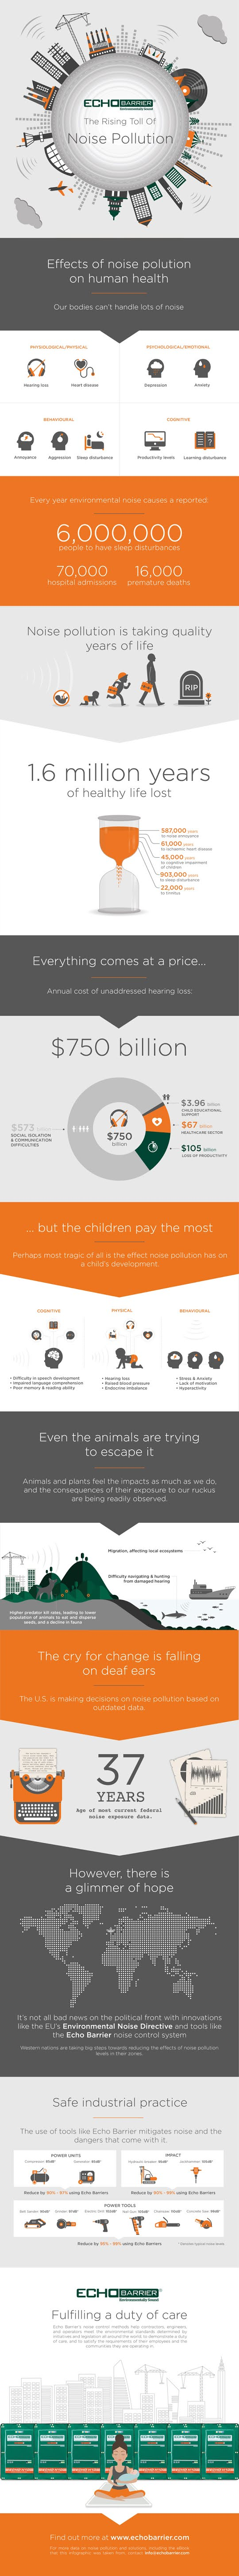 The Rising Toll Of Noise Pollution #infographic #Noise Pollution #Effect